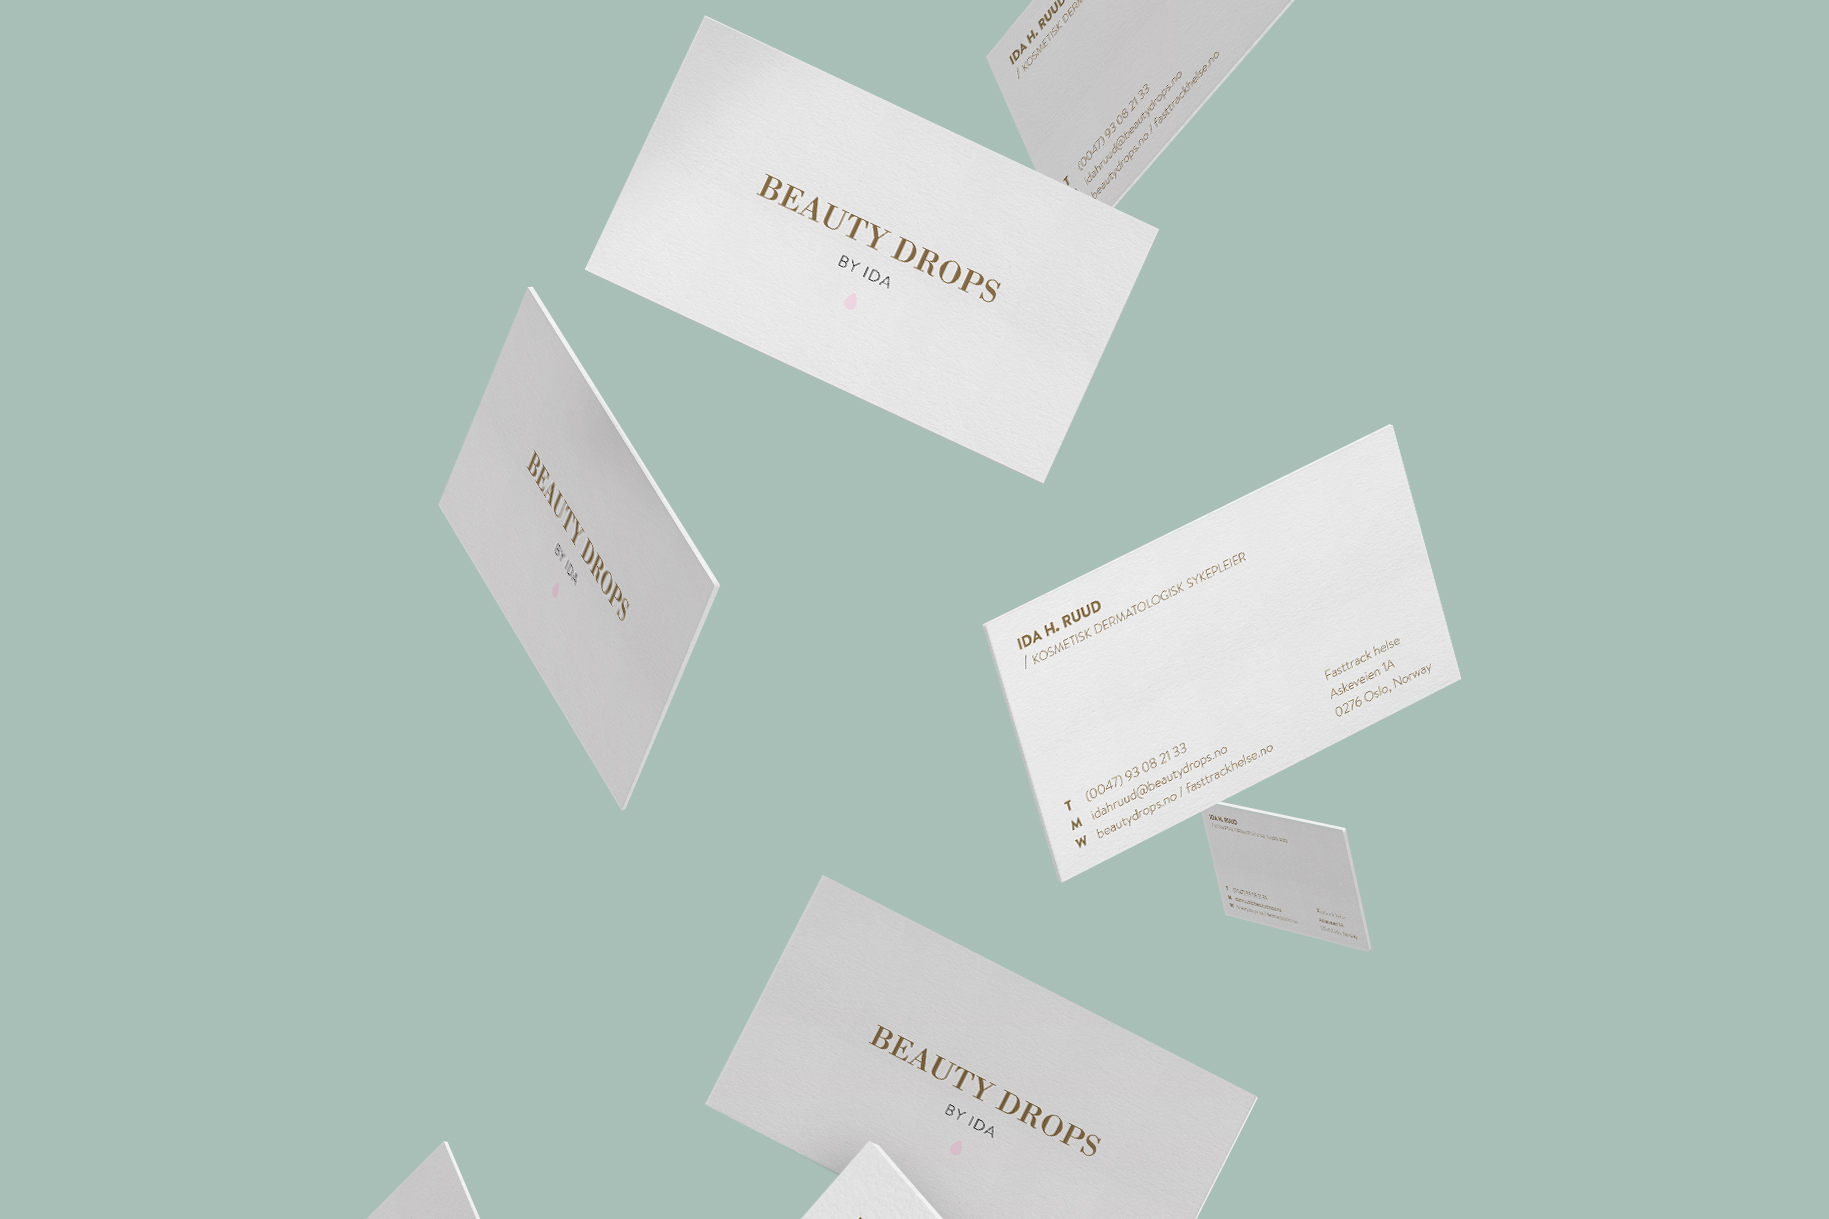 BeautyDrops_businesscard_mockup_01